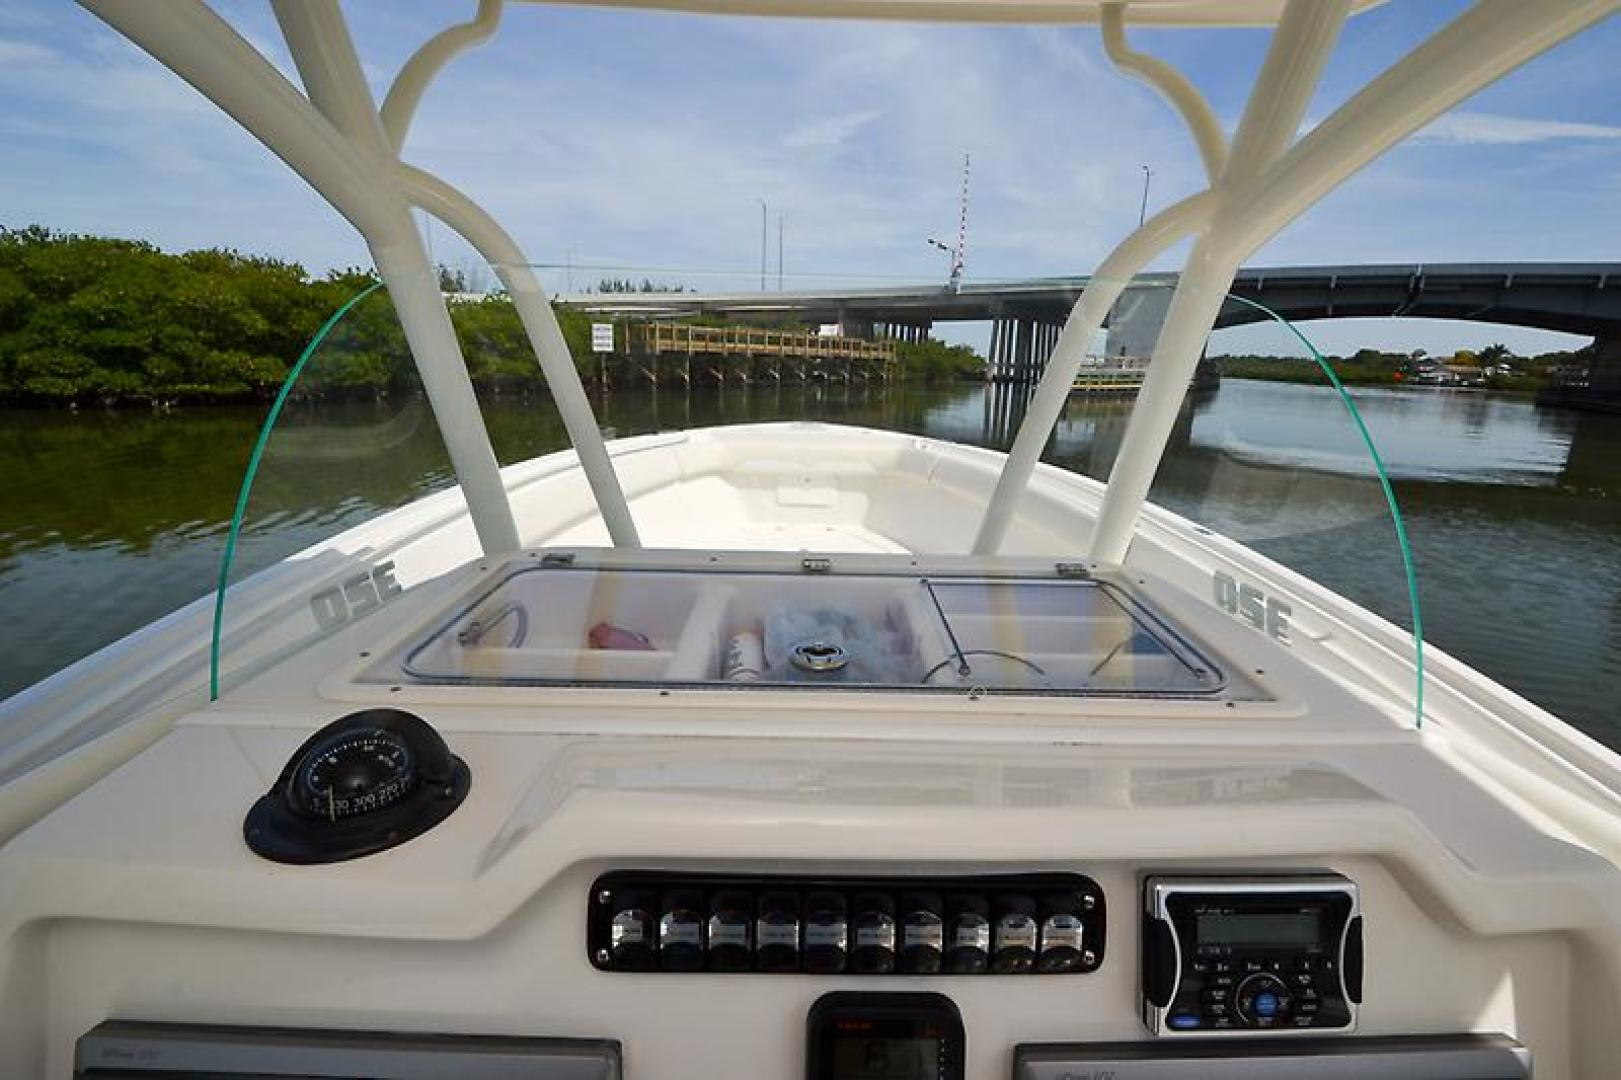 2014 Sailfish 320 cc-38.jpg